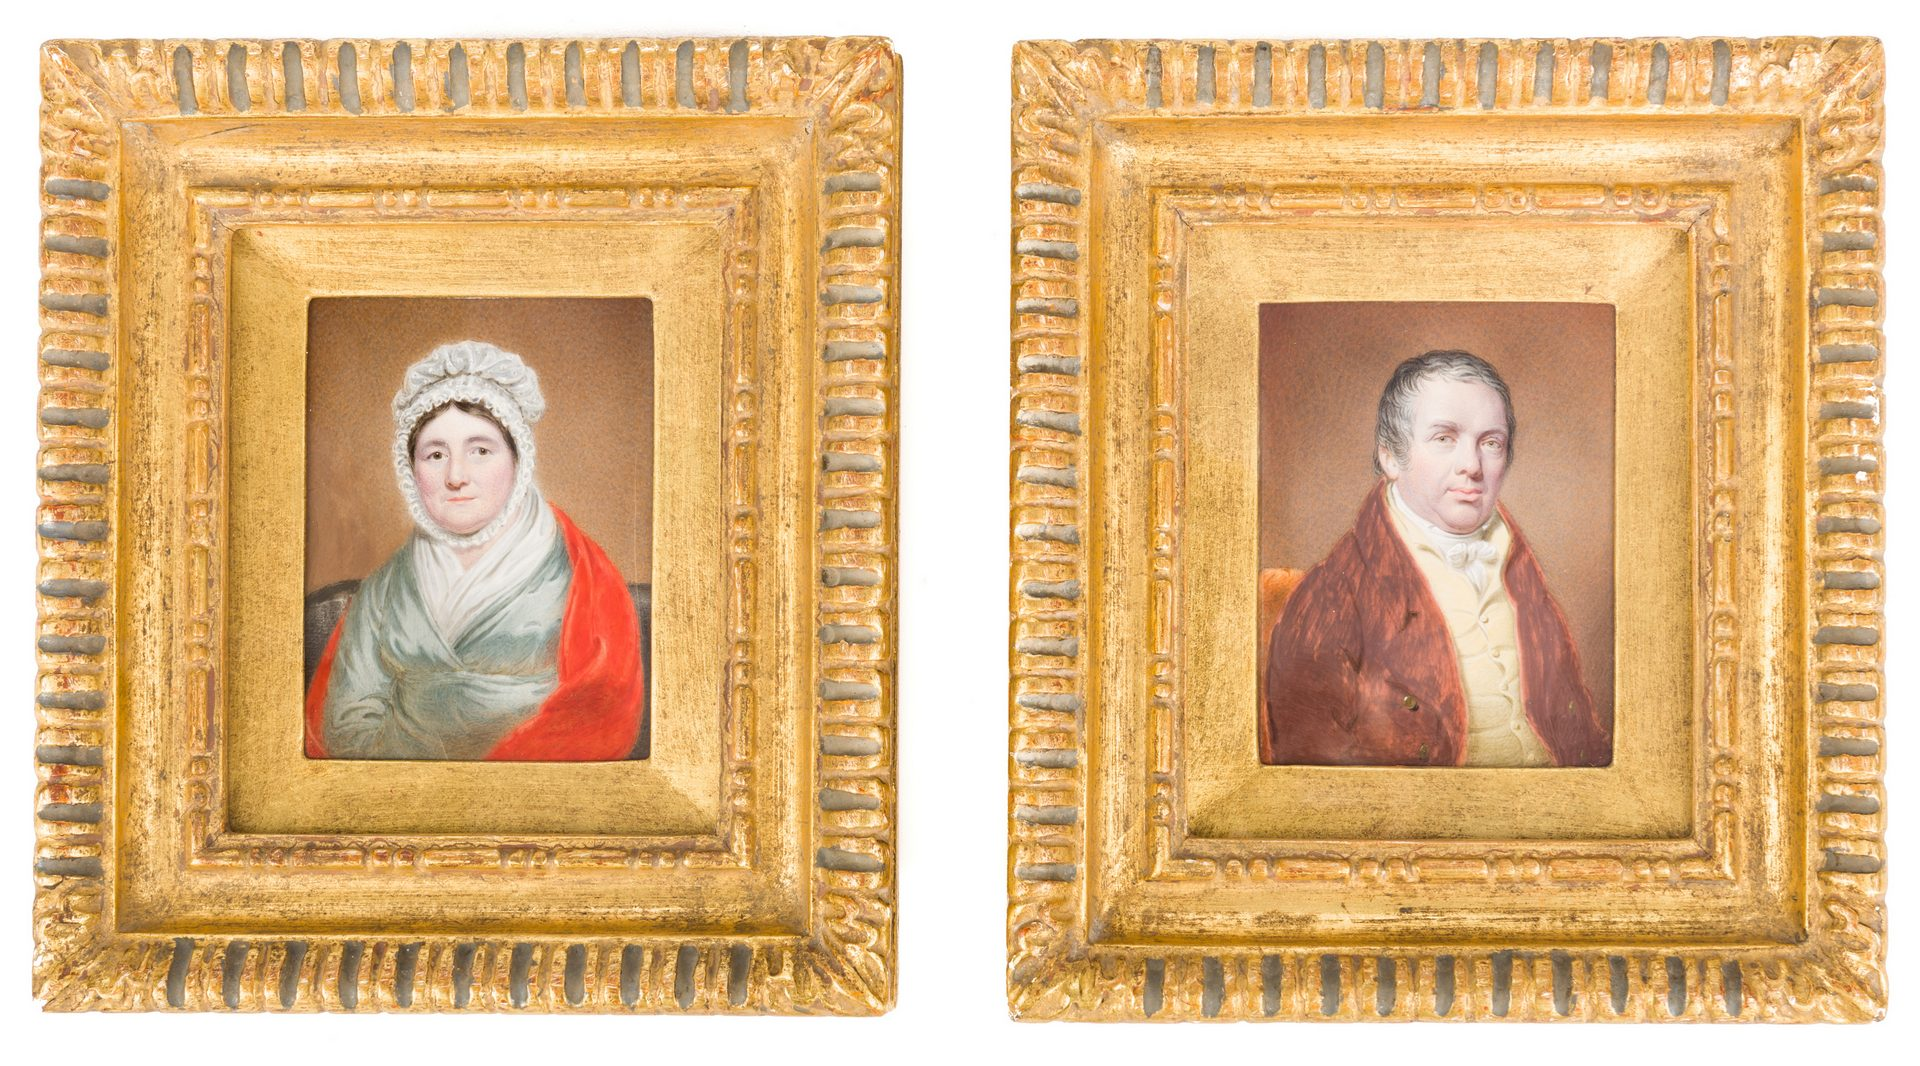 Lot 166: Pair of Miniature Portraits, 19th century